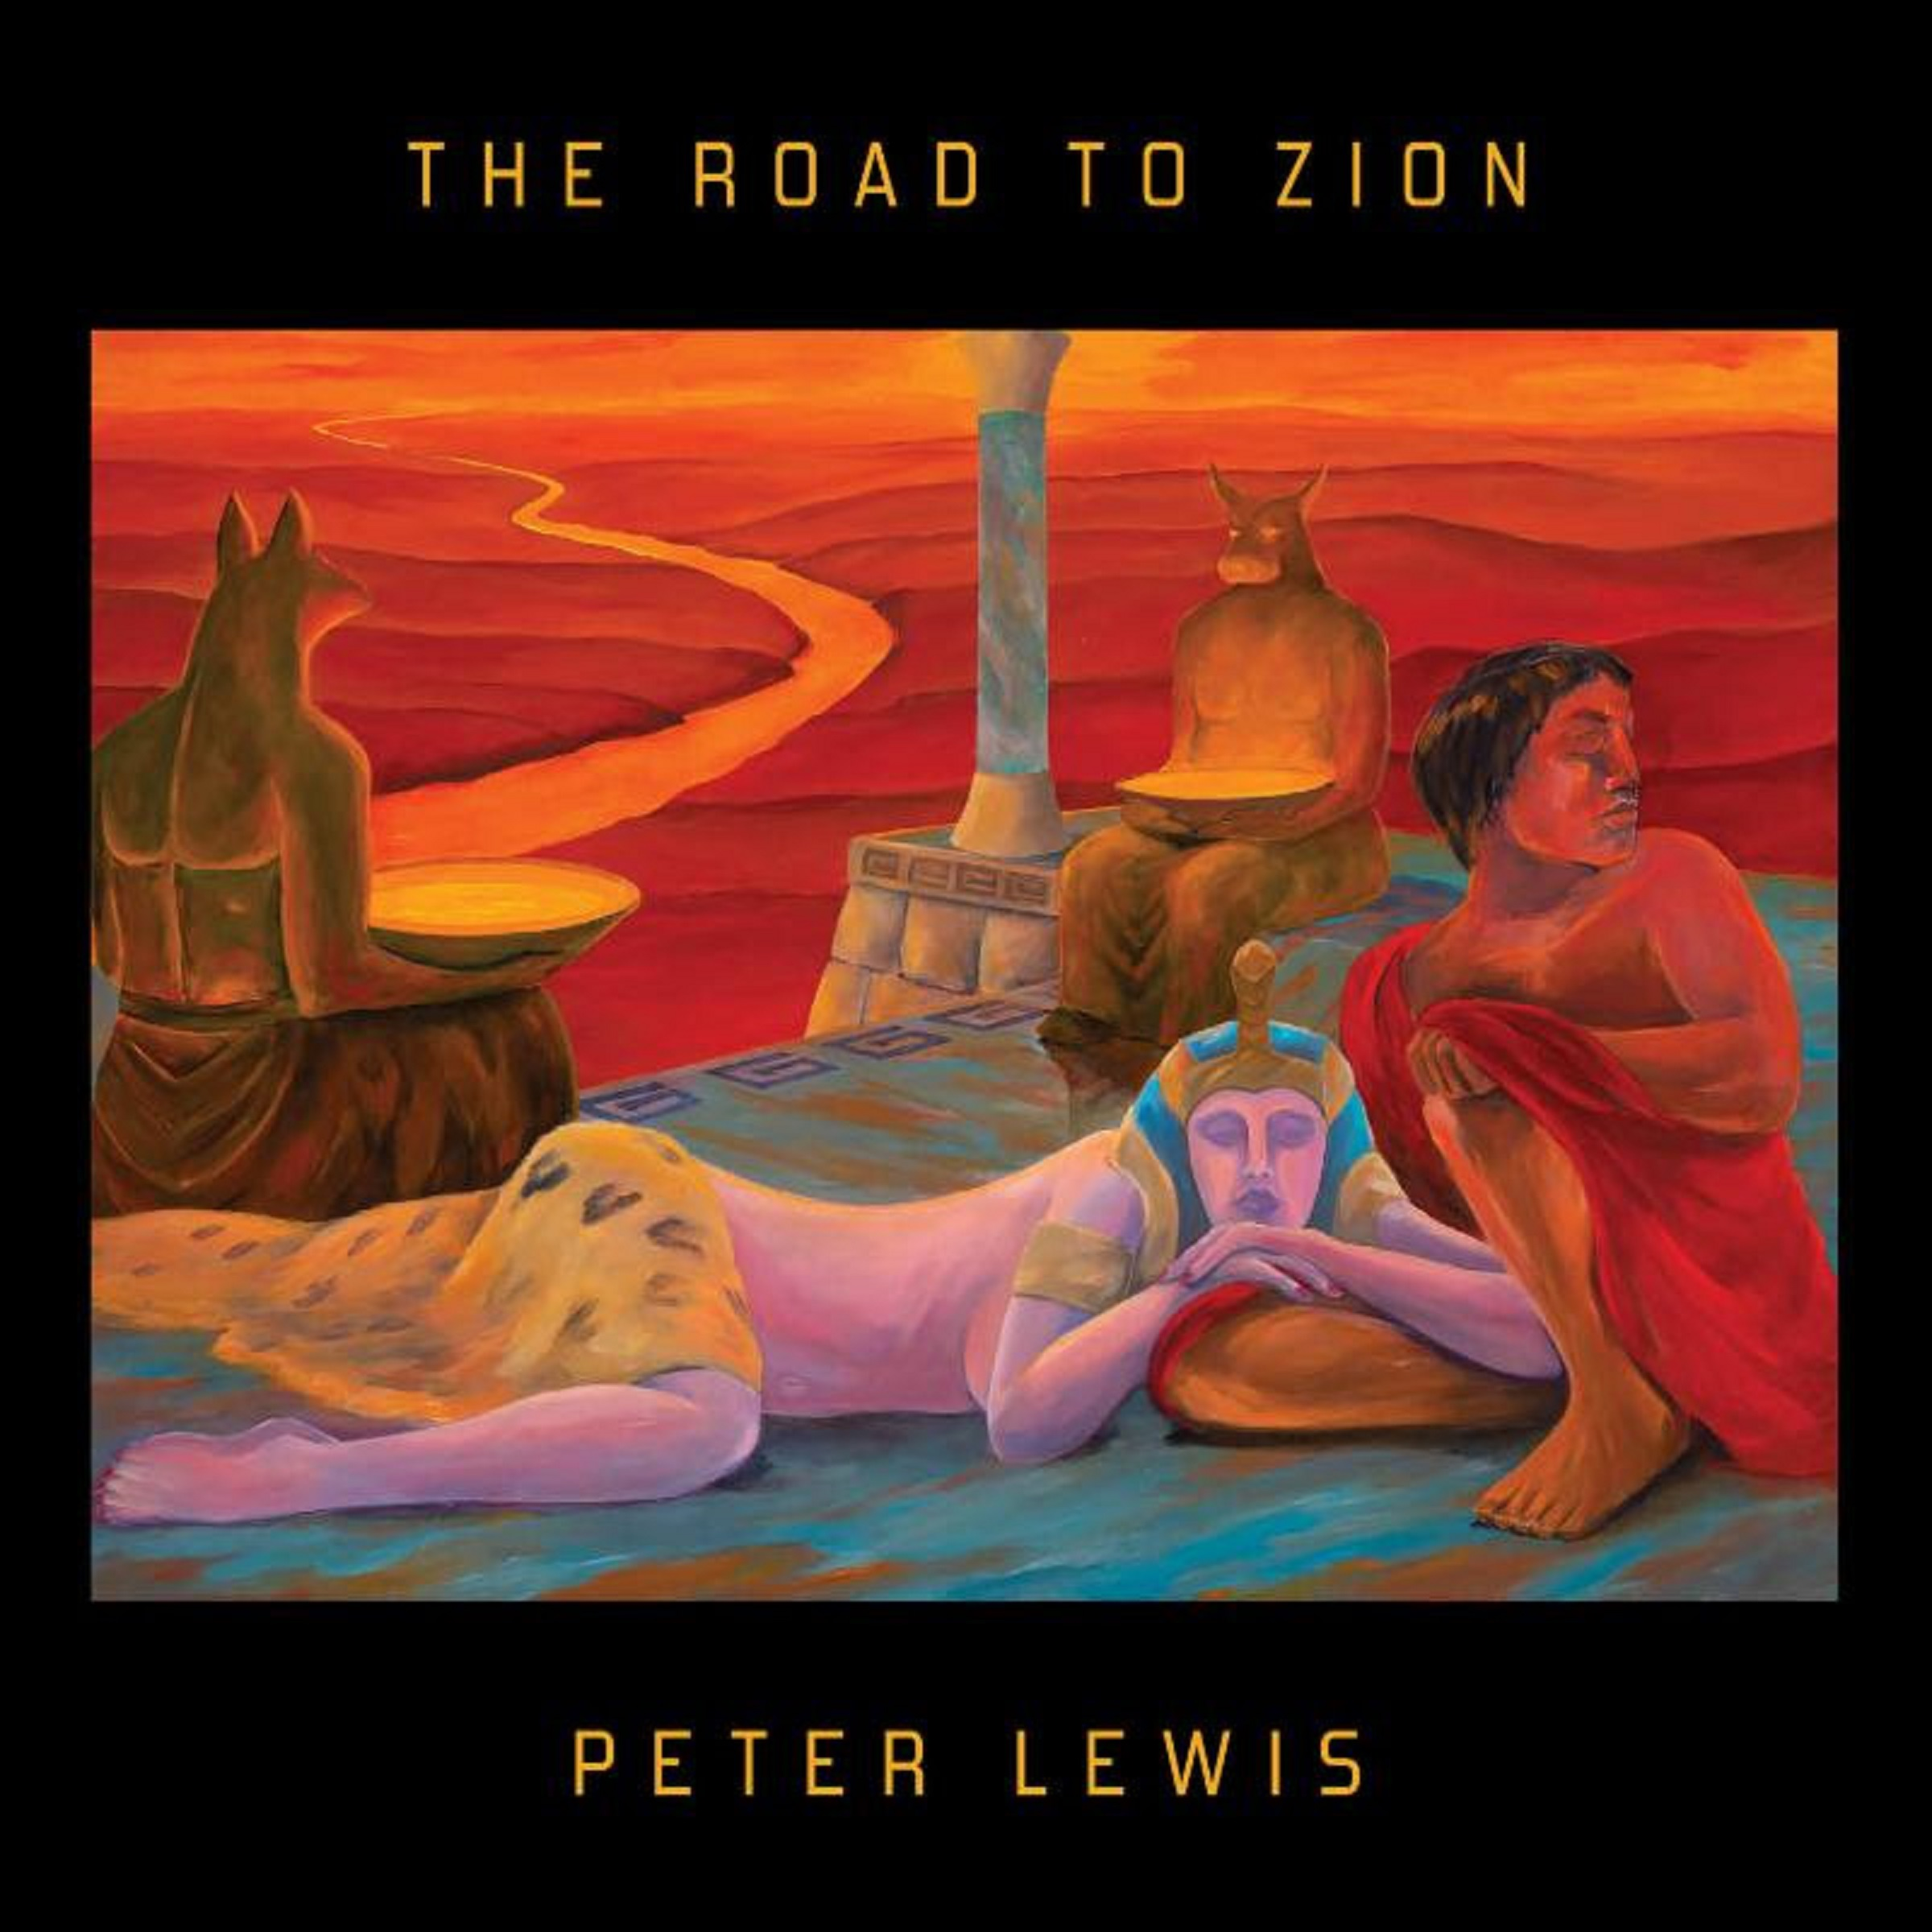 Peter Lewis, Moby Grape founding member, set to release album 'The Road To Zion' on July 16